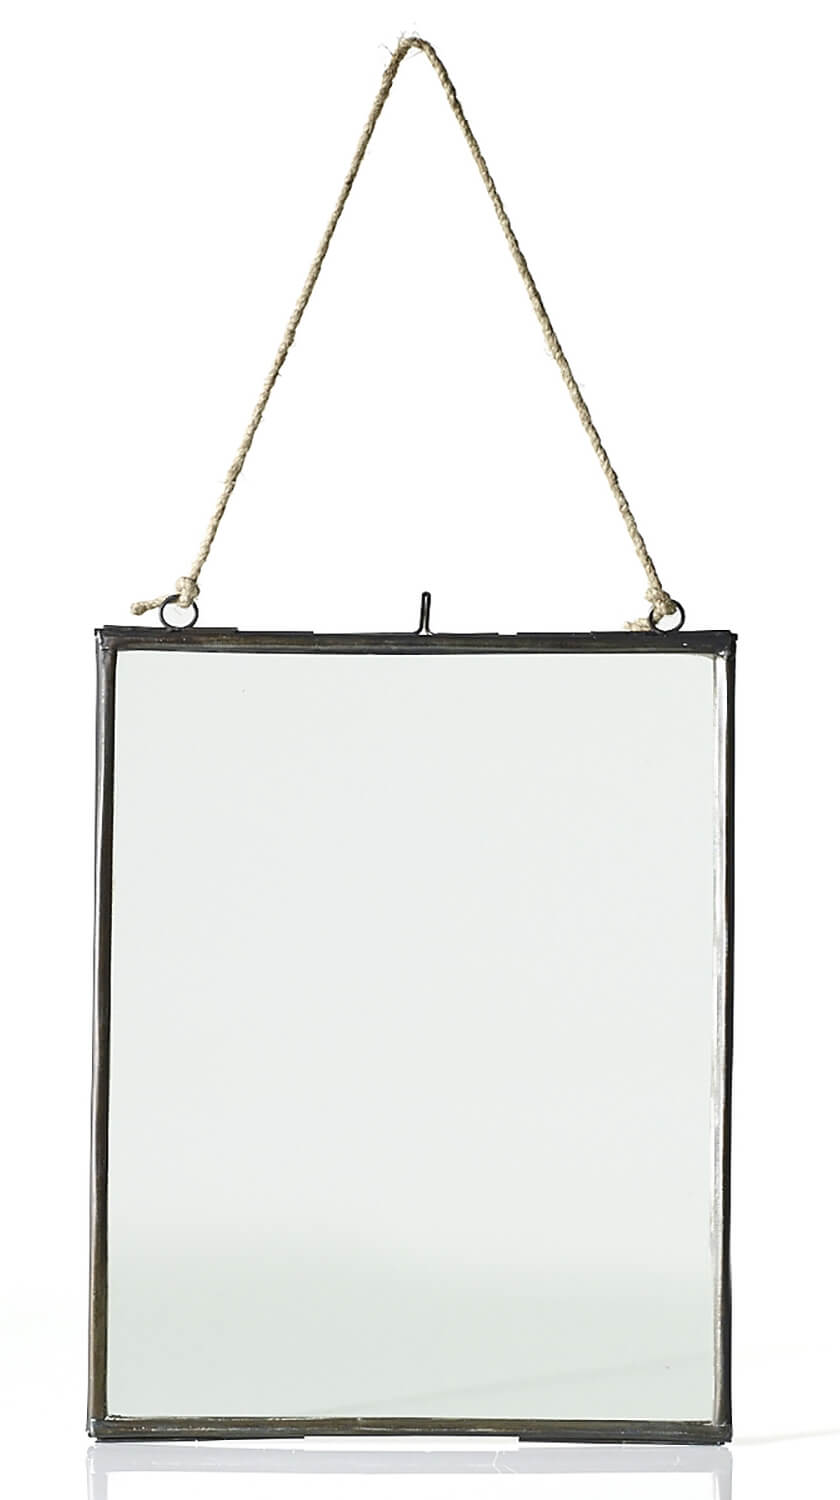 "Photo Frame Metal Hanging 8"" x 10.5"""